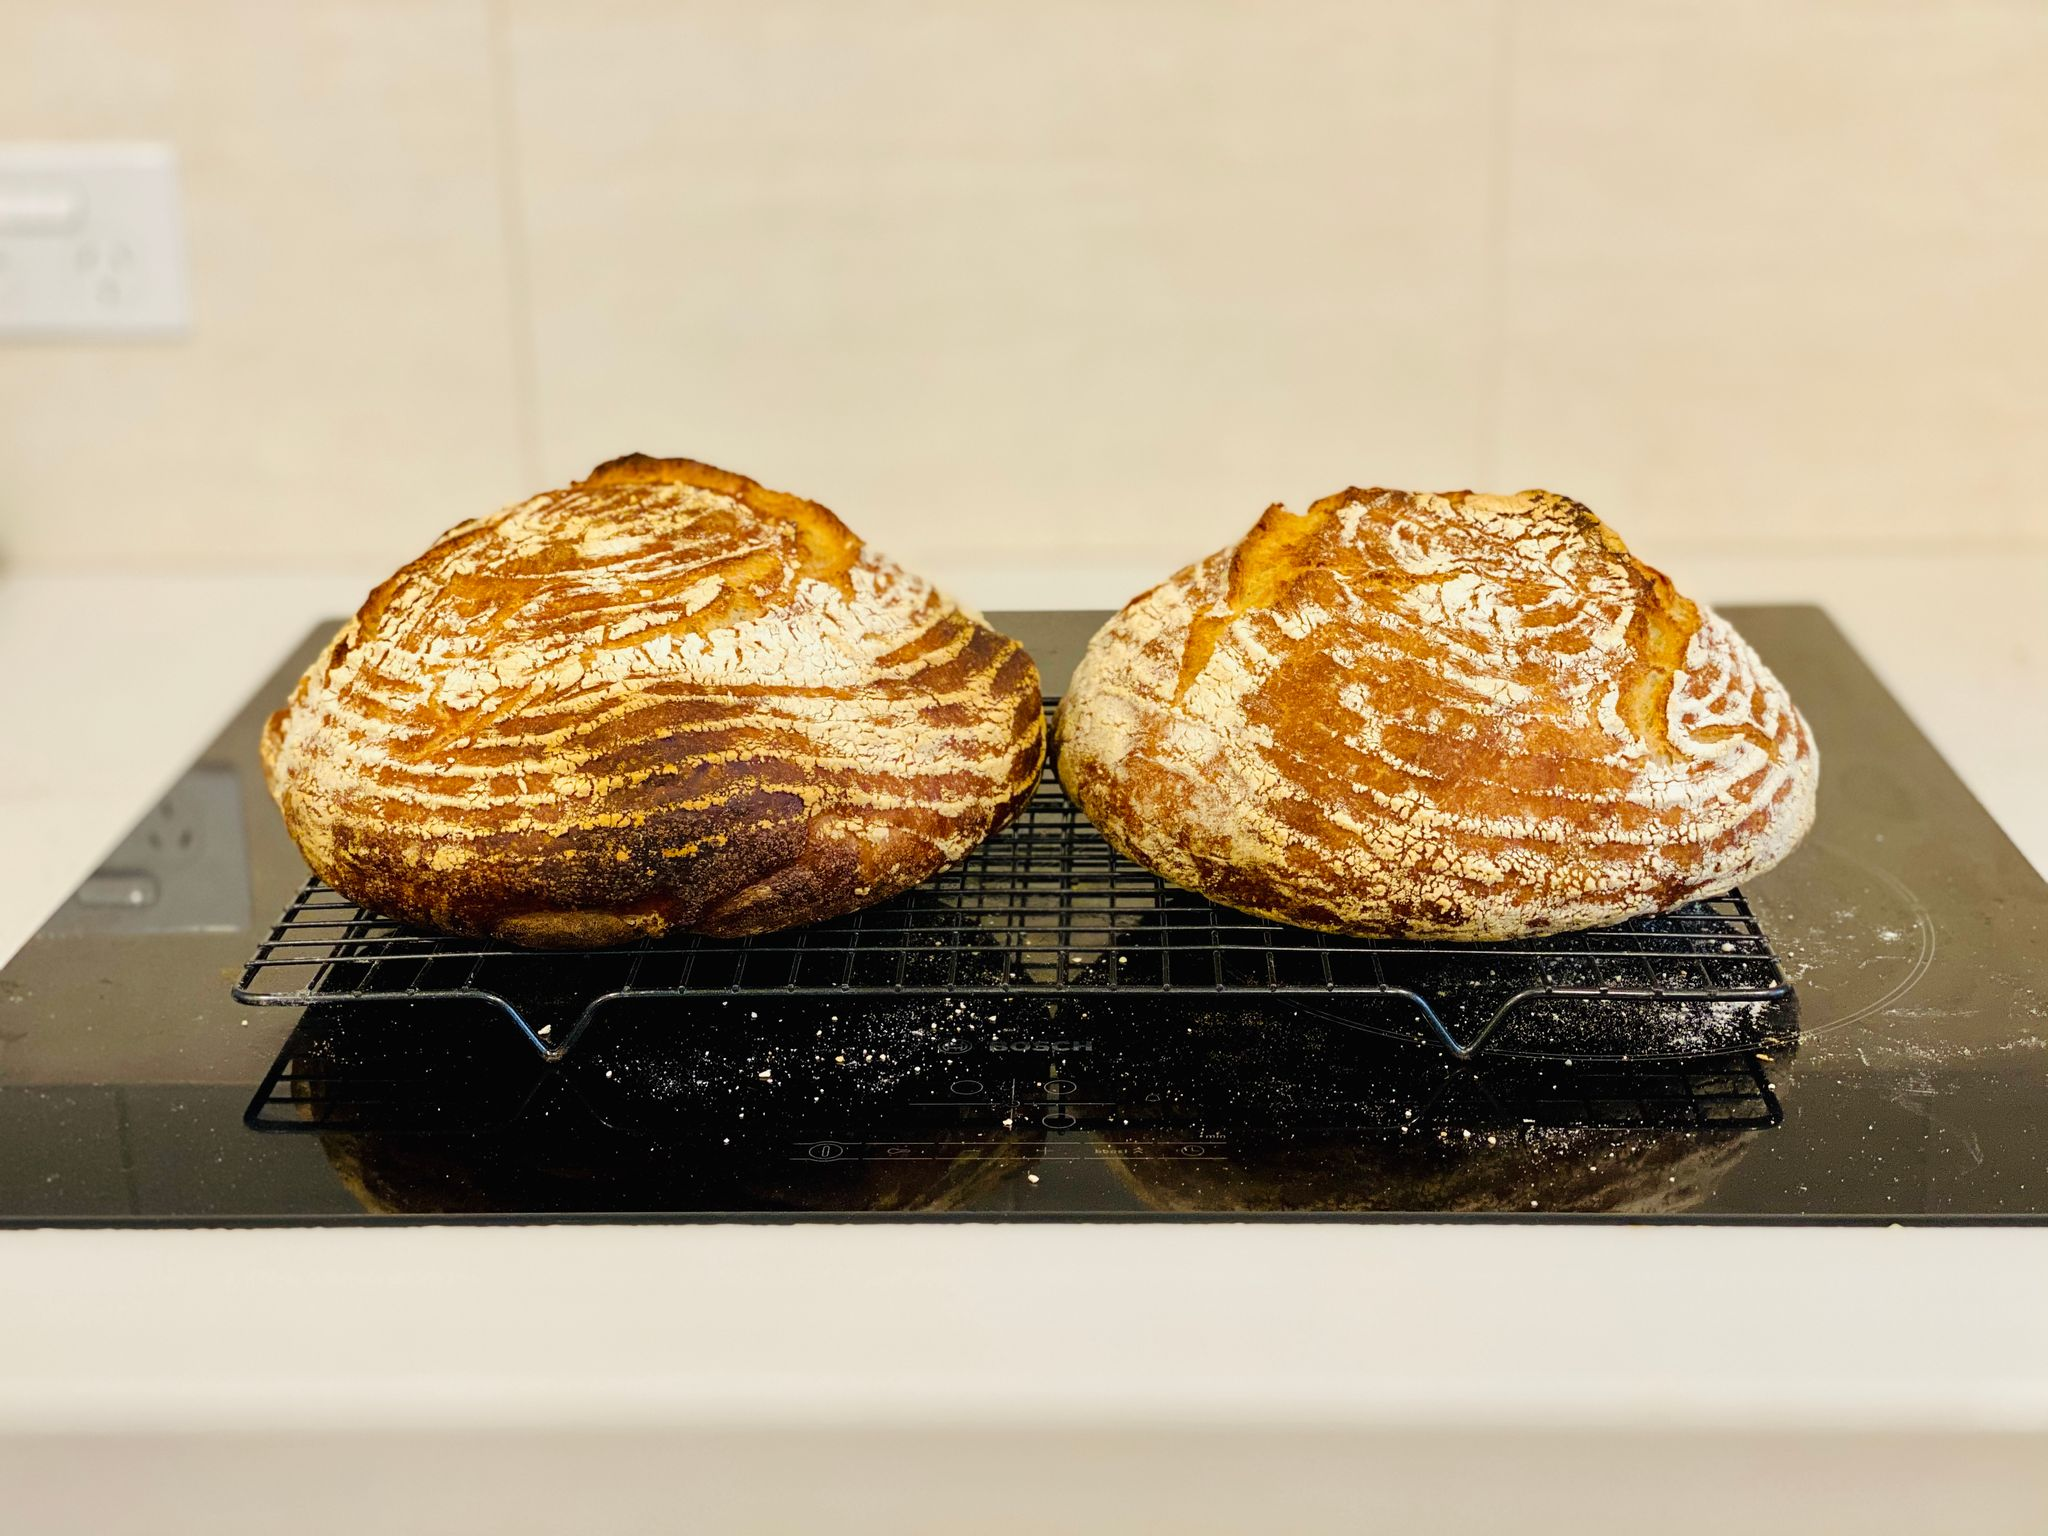 Two round golden brown loaves of bread sitting on a cooling rack.